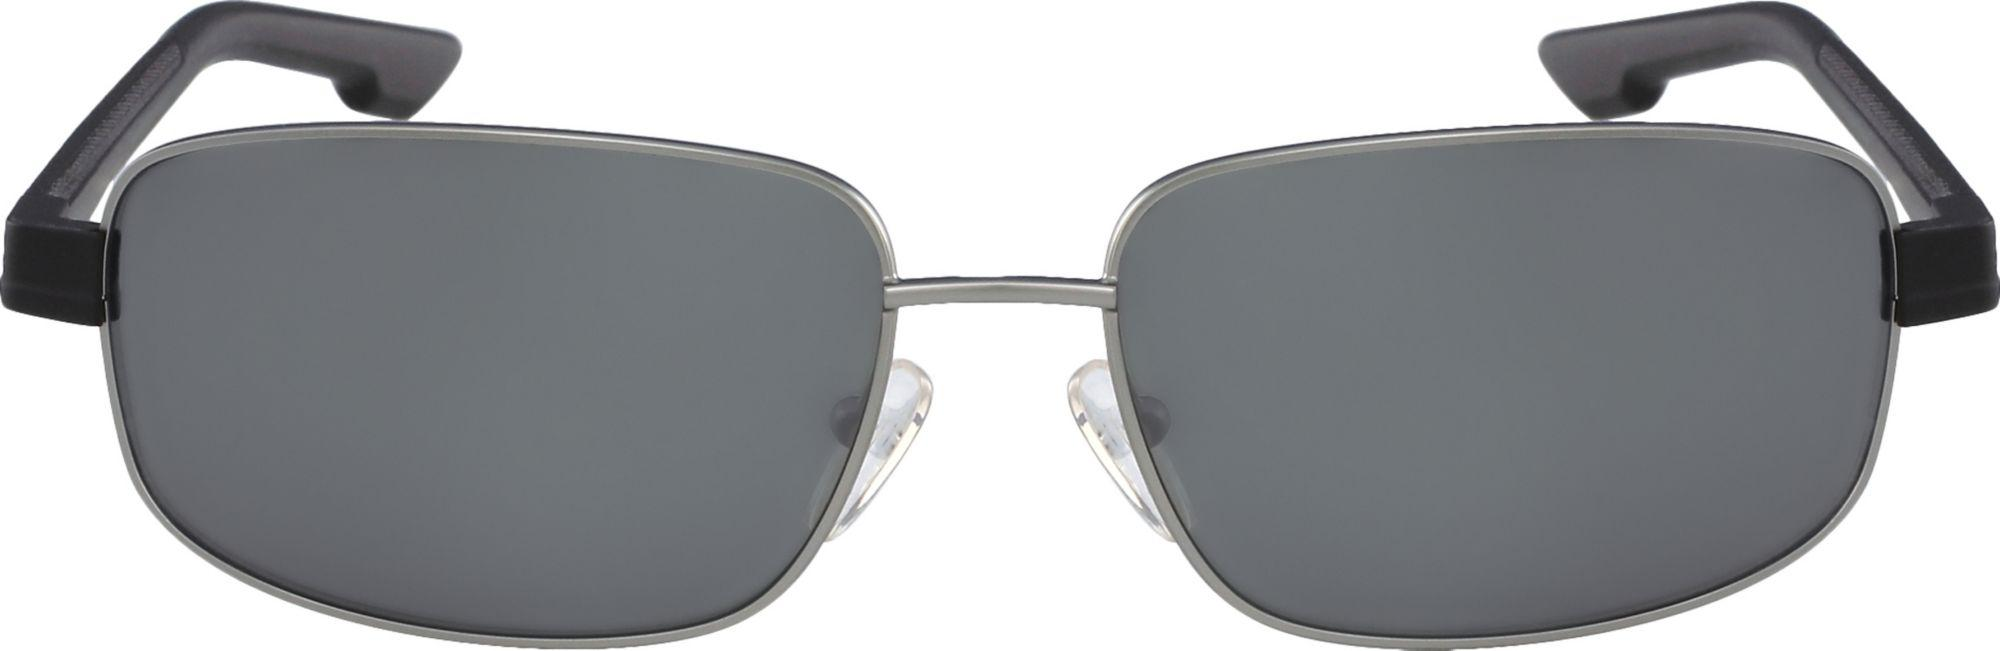 3a5001c6fac Lyst - Columbia Cliff Haven Sunglasses in Gray for Men